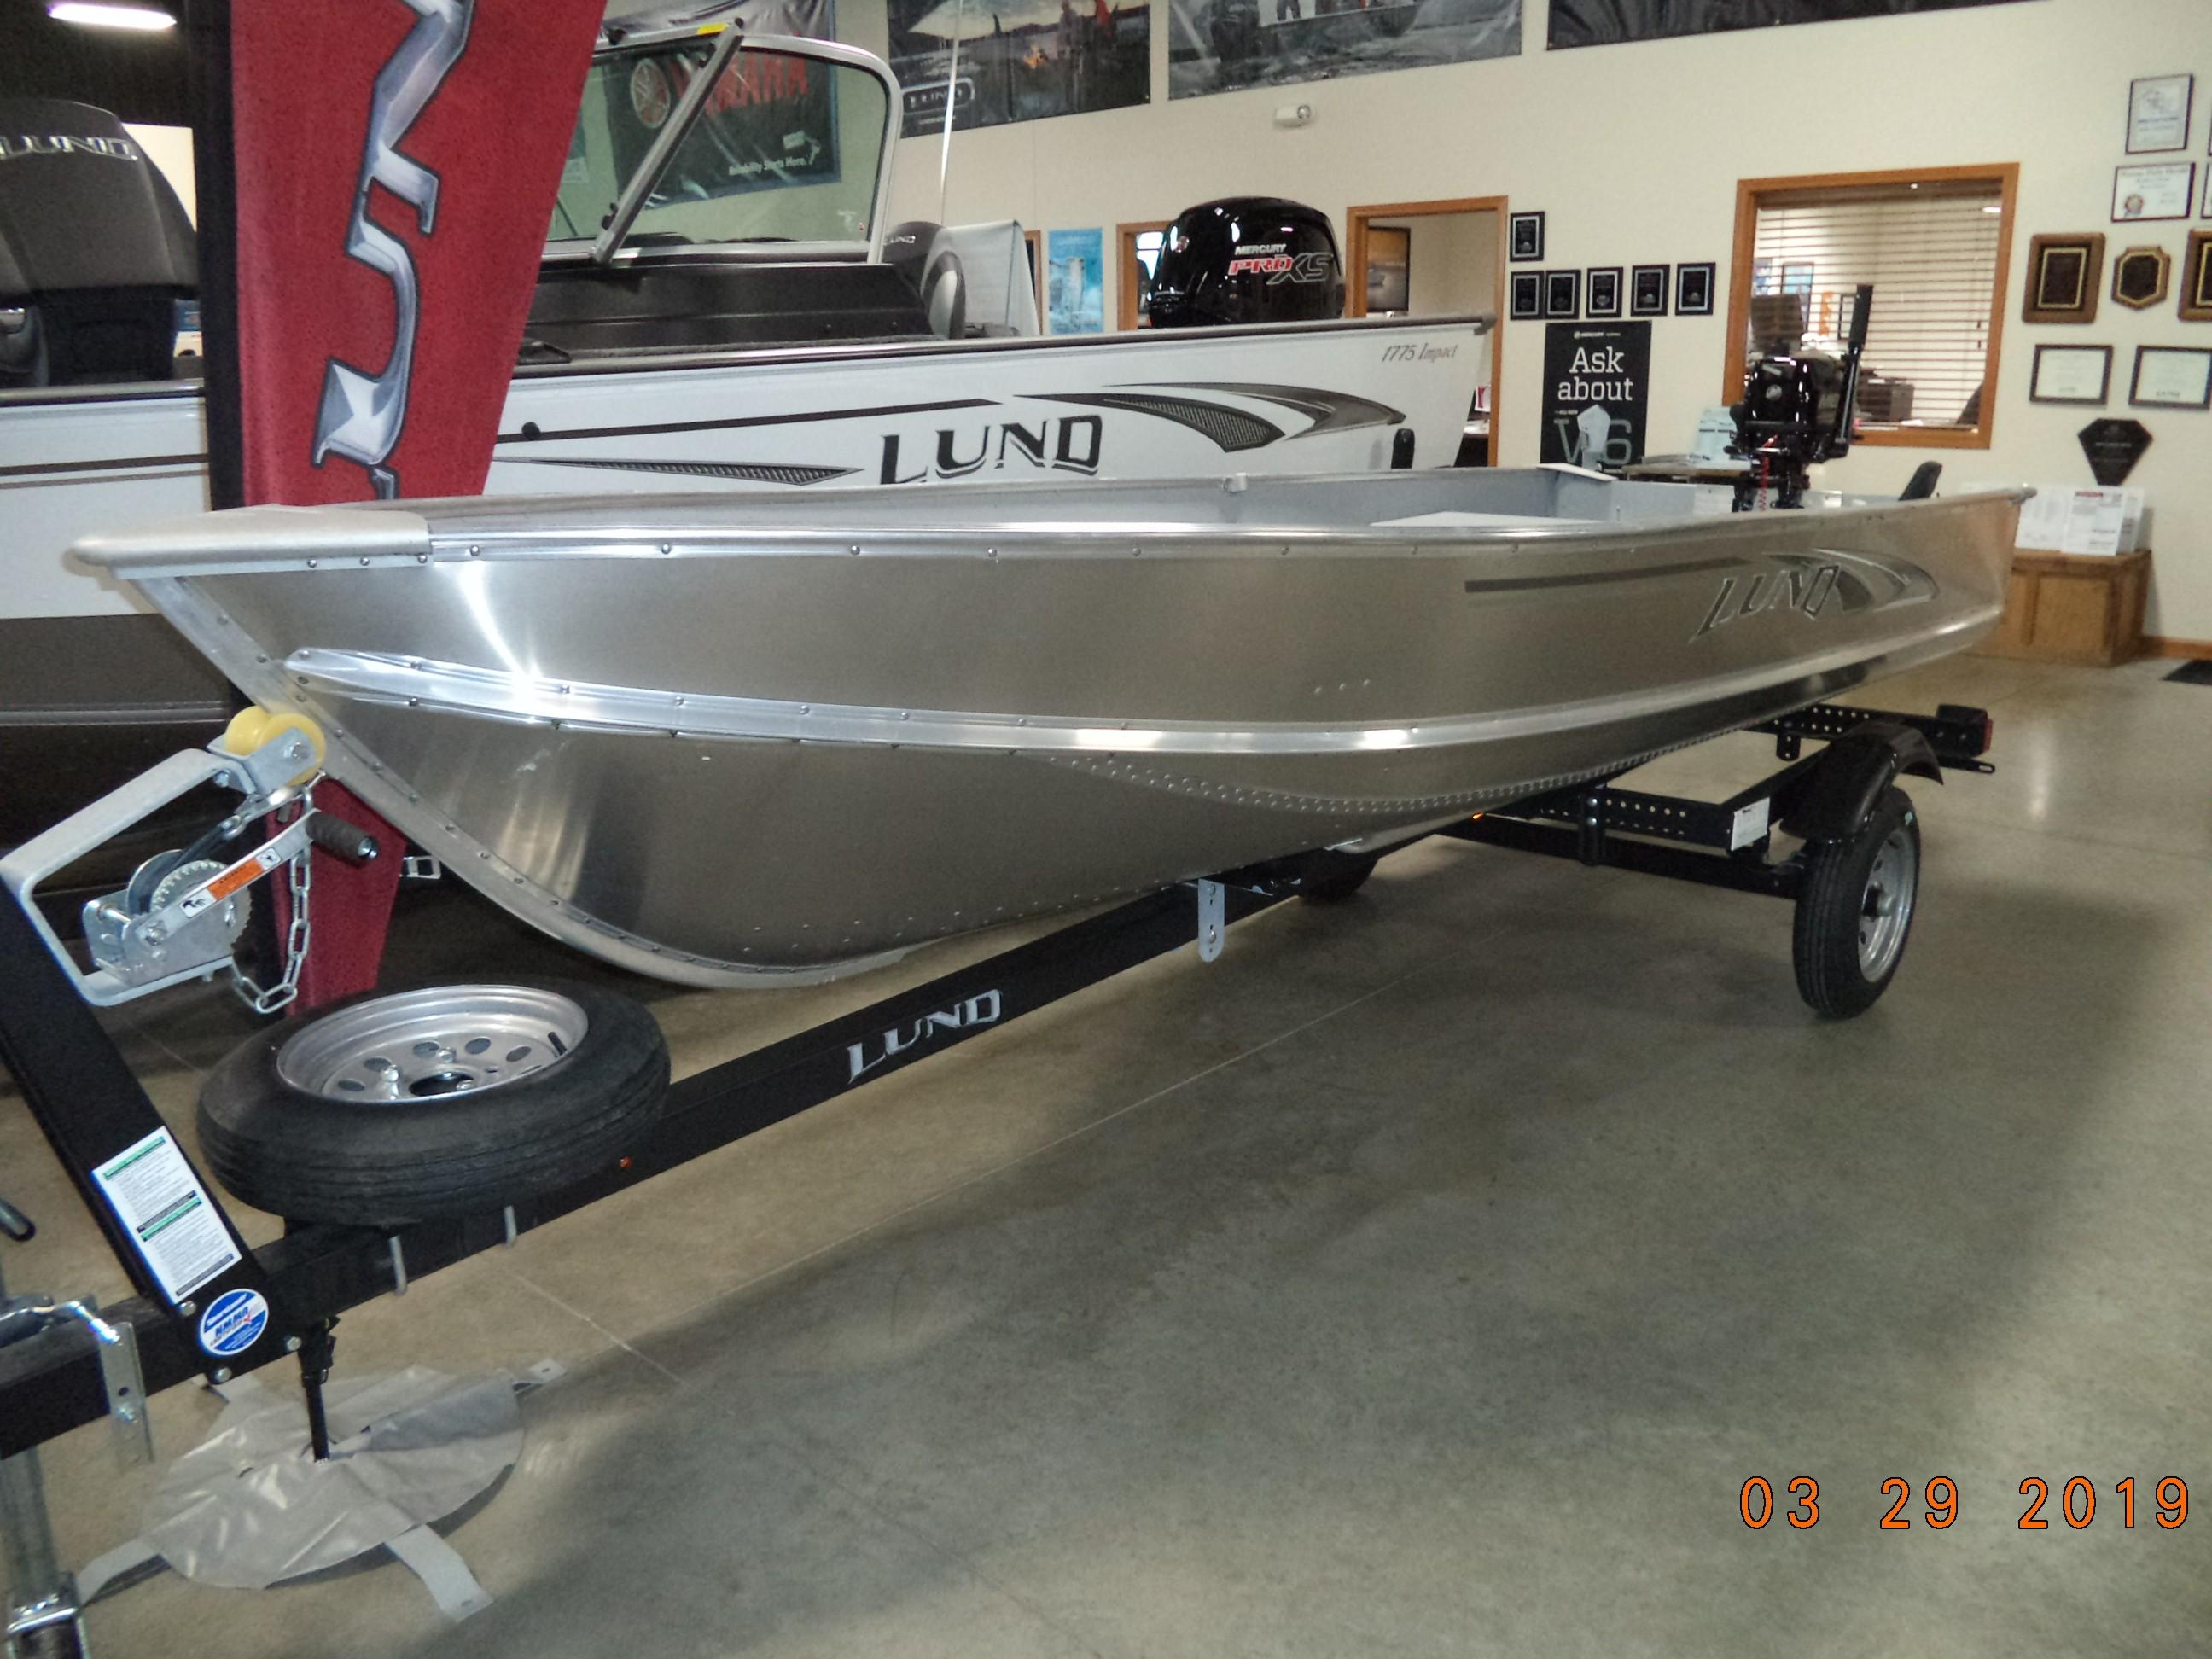 Lund A 14 Tiller Power Boats For Sale - M & J Marine in United States